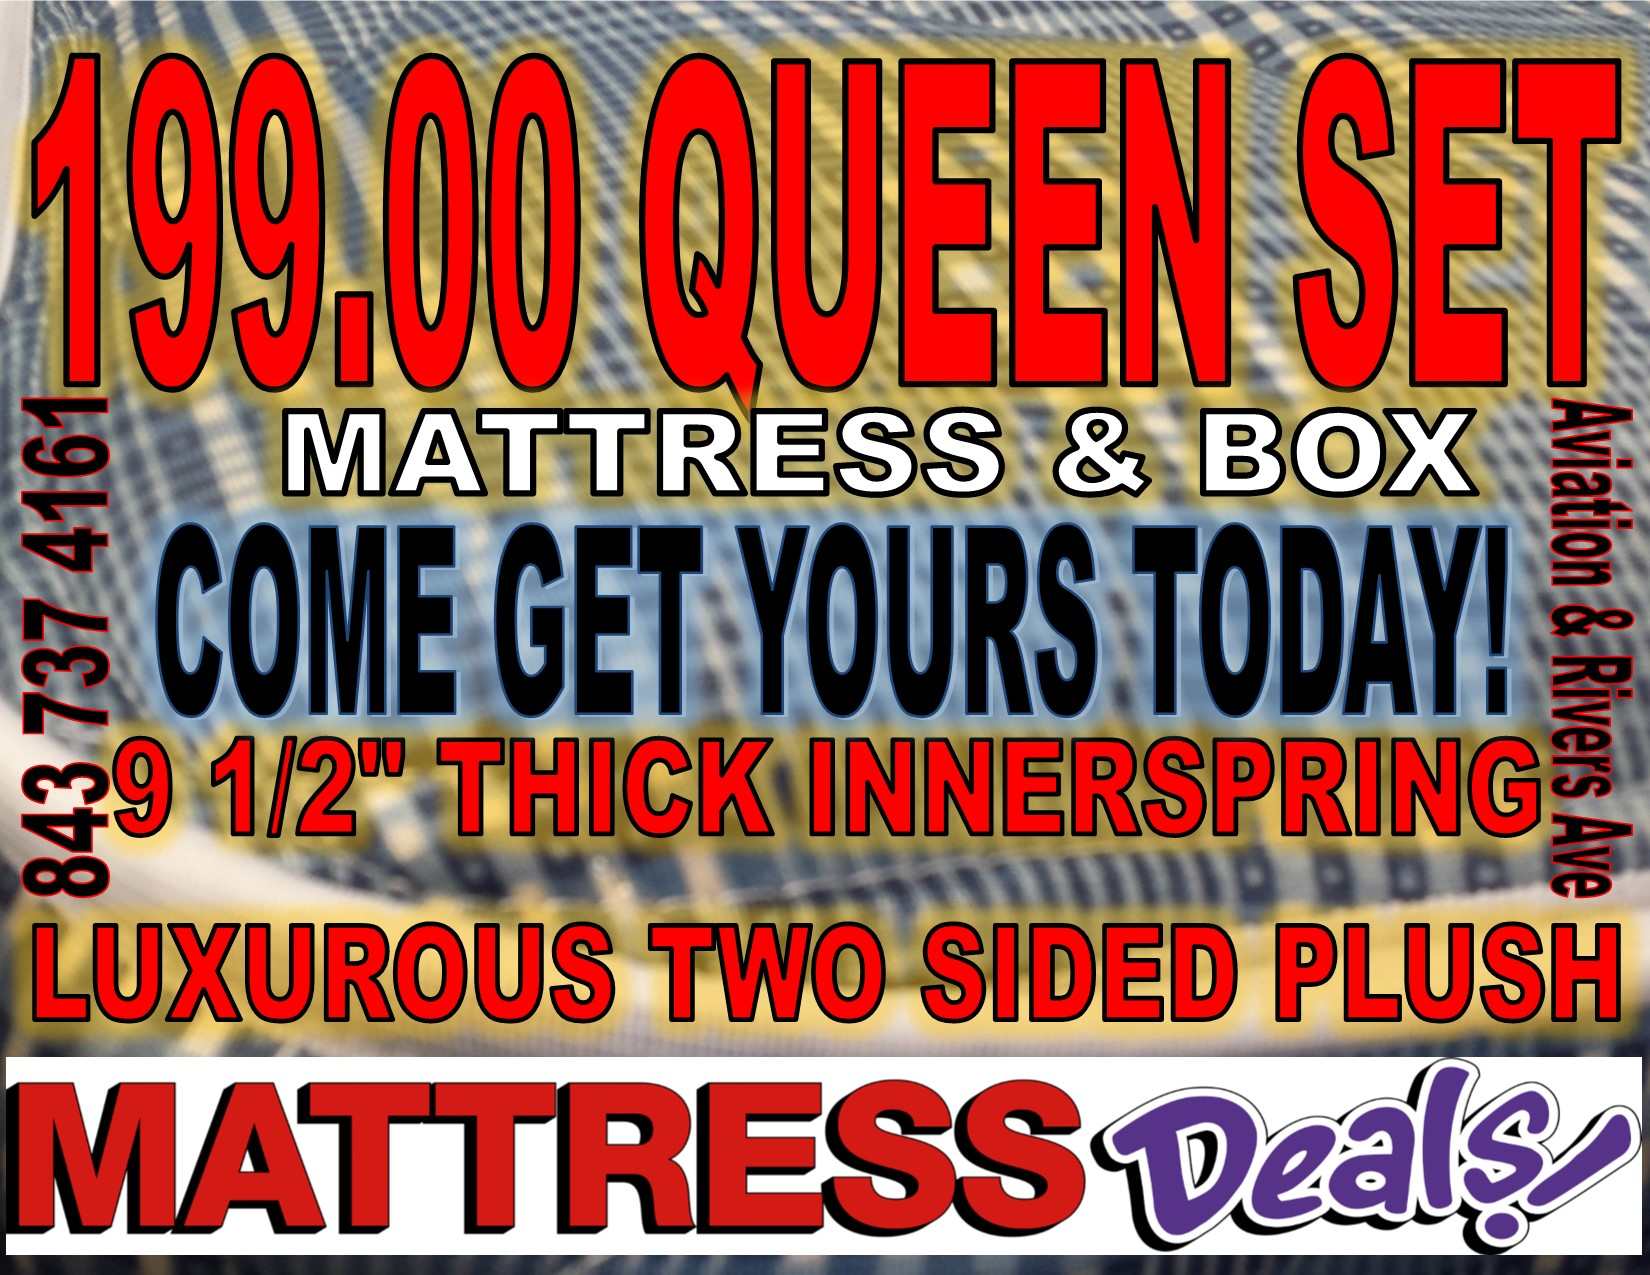 Mattress Deals image 4